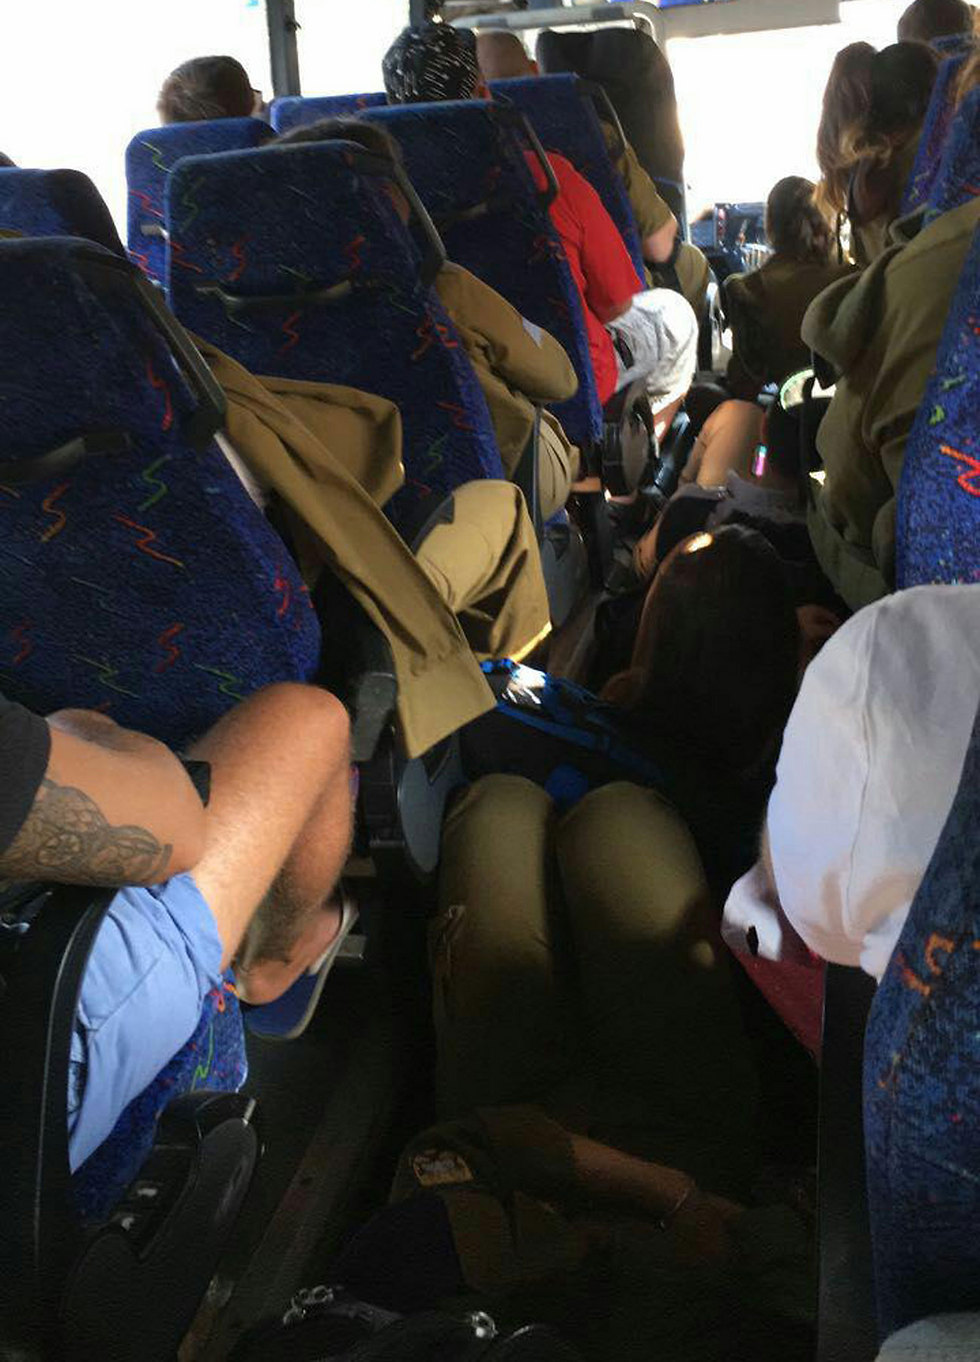 Packed bus as main train line disabled